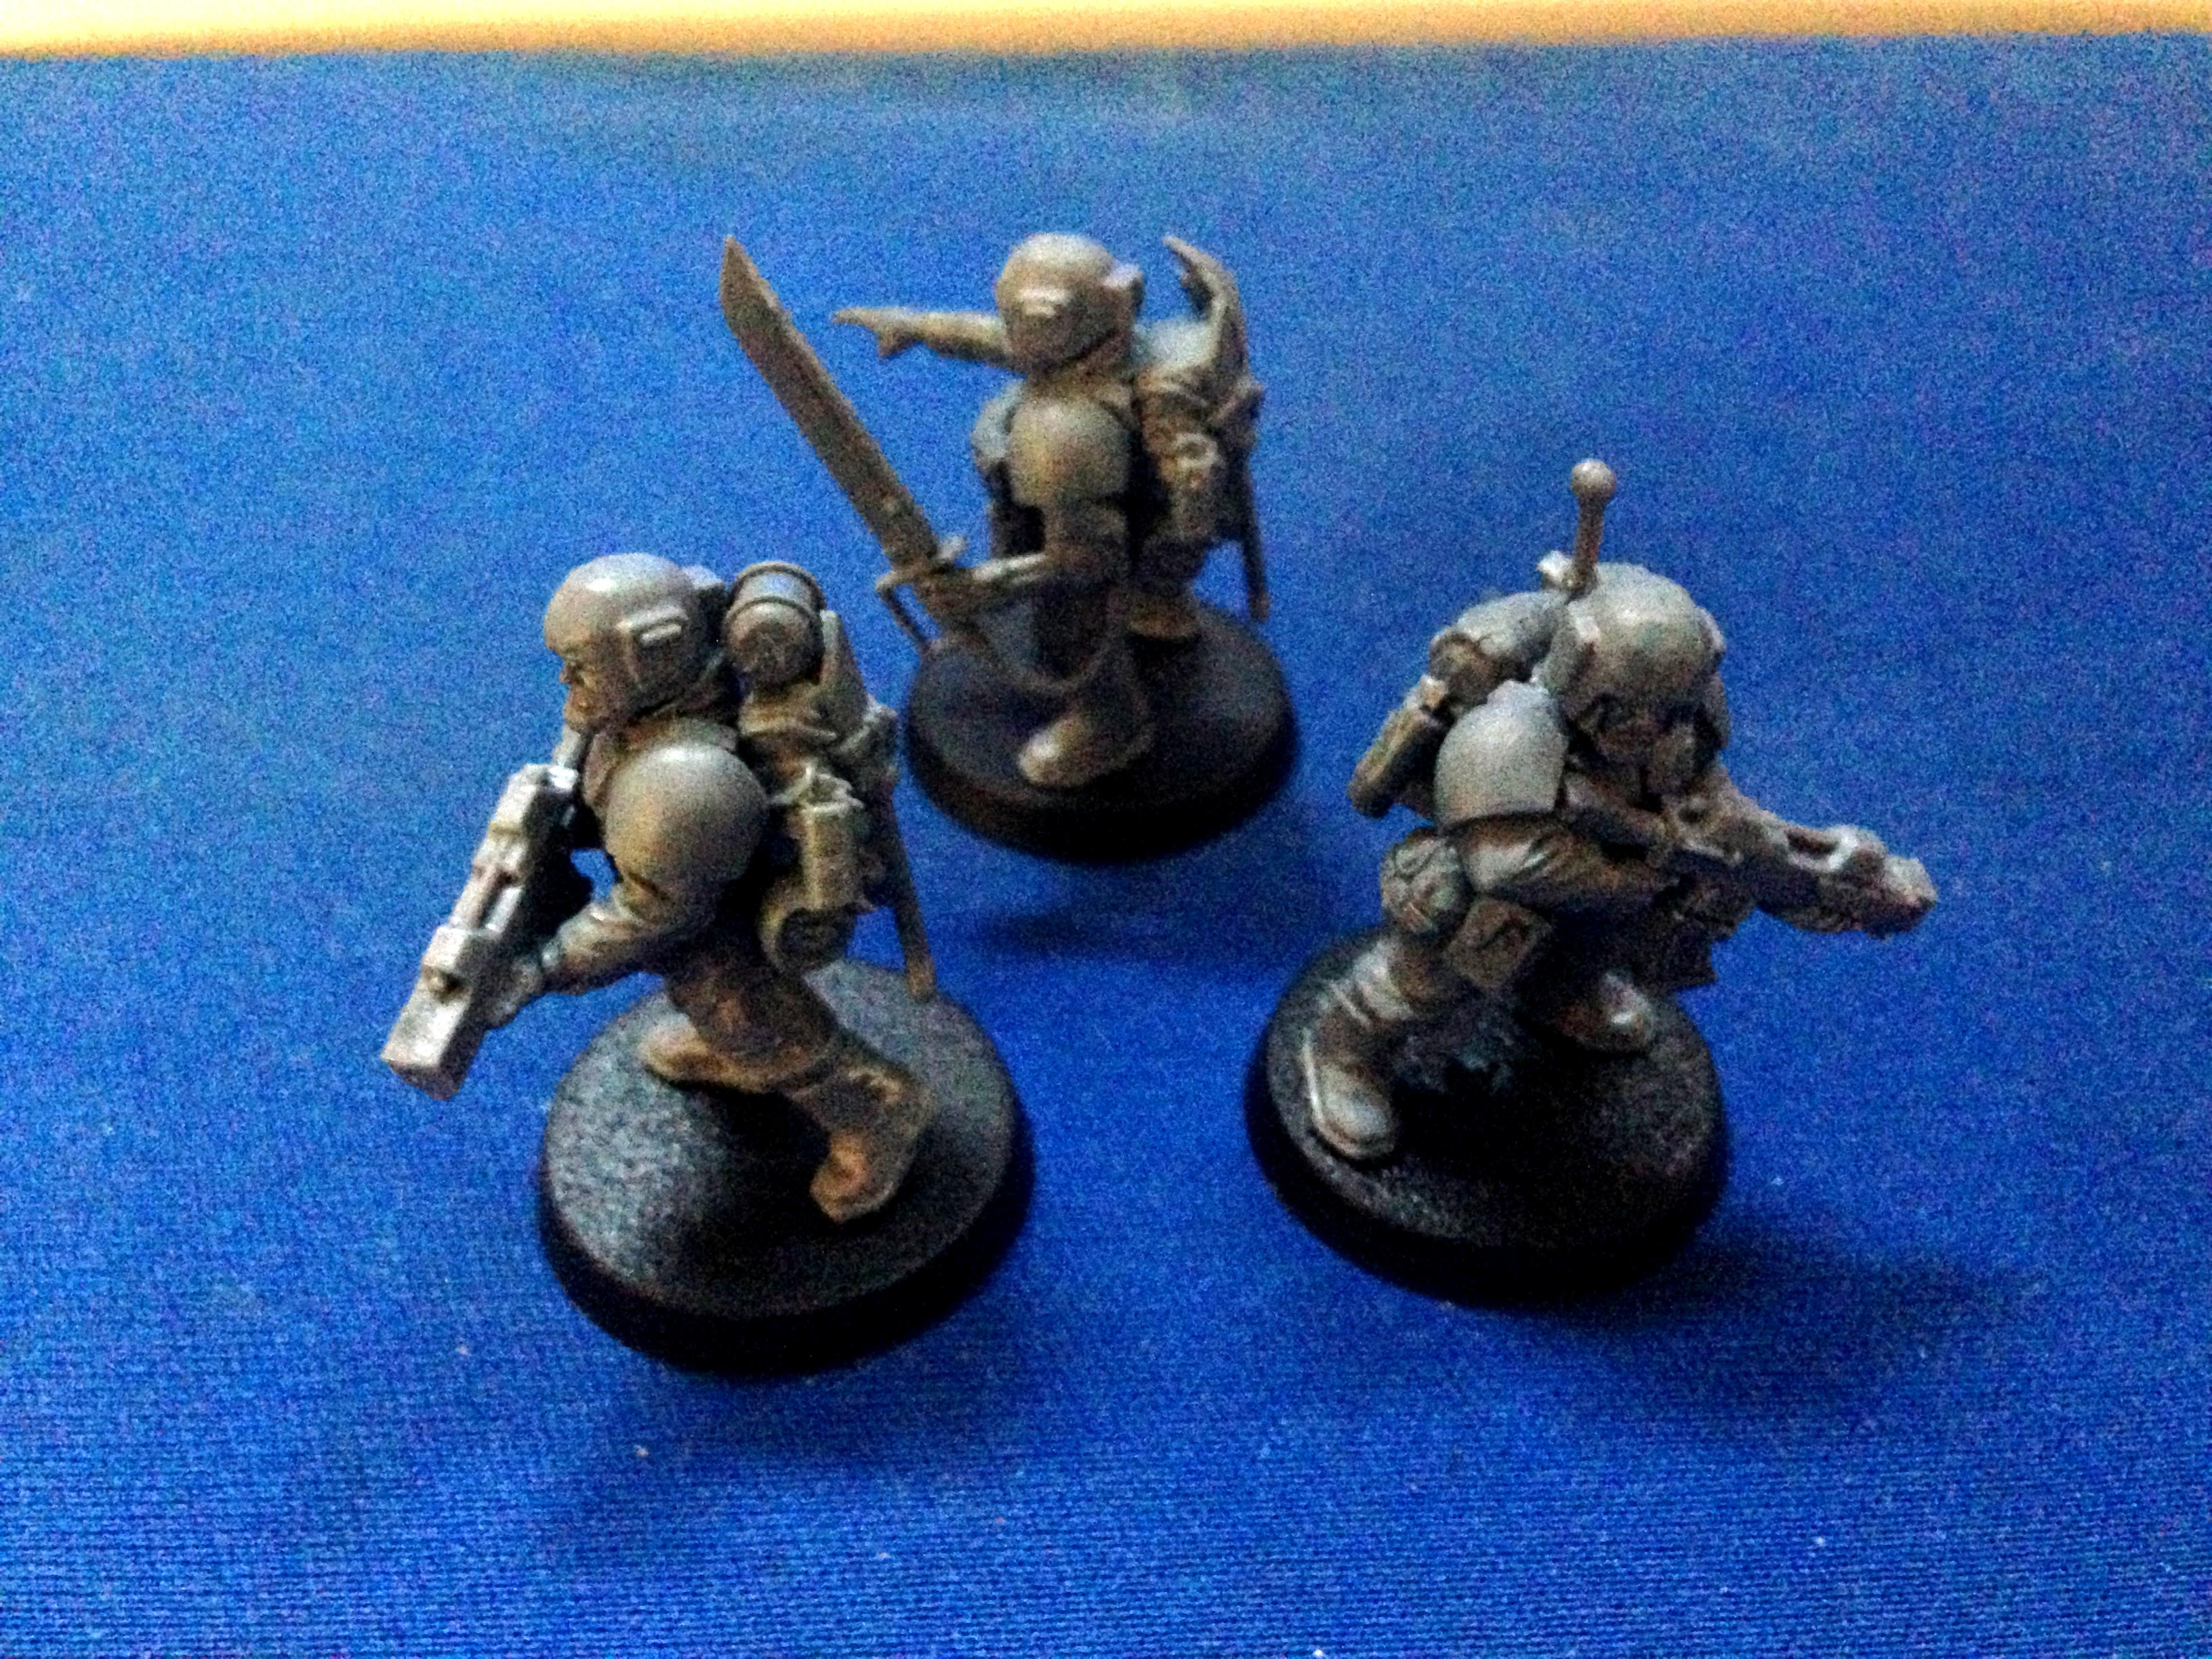 Cadians, Conversion, Imperial Guard, Paratroopers, Special Forces, Spetsnaz, Warhammer 40,000